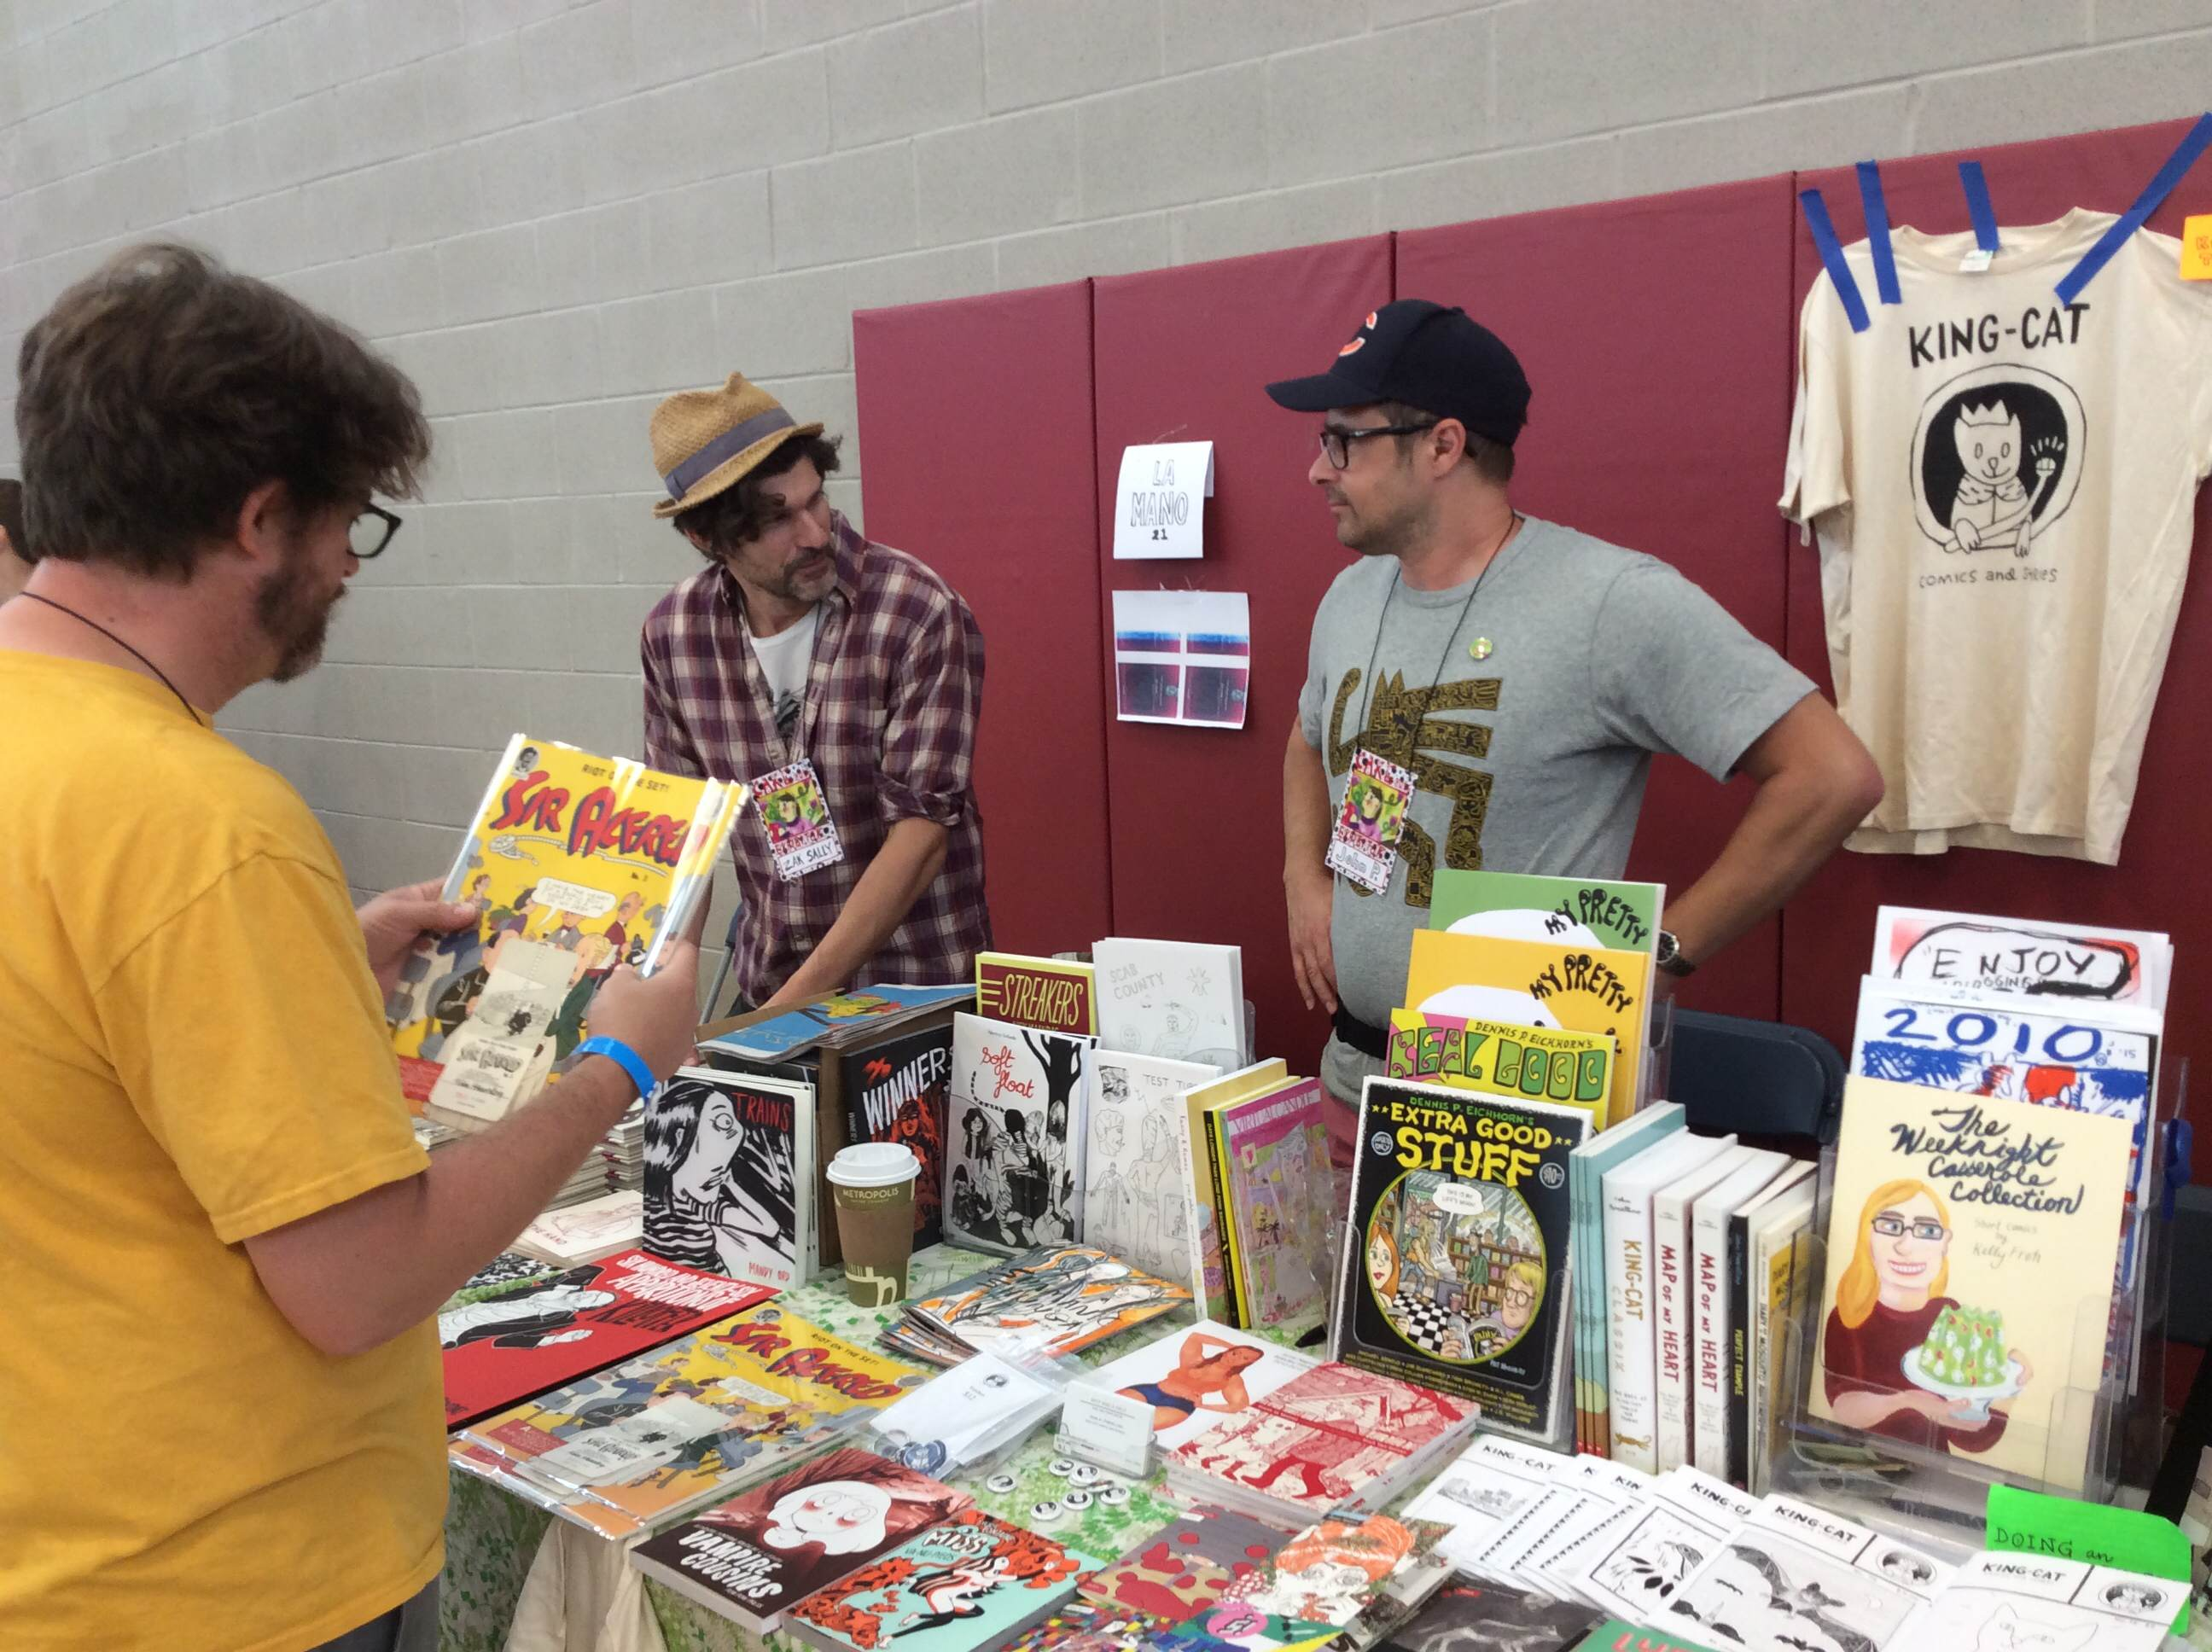 Chicago Alternative Comics Expo 2016